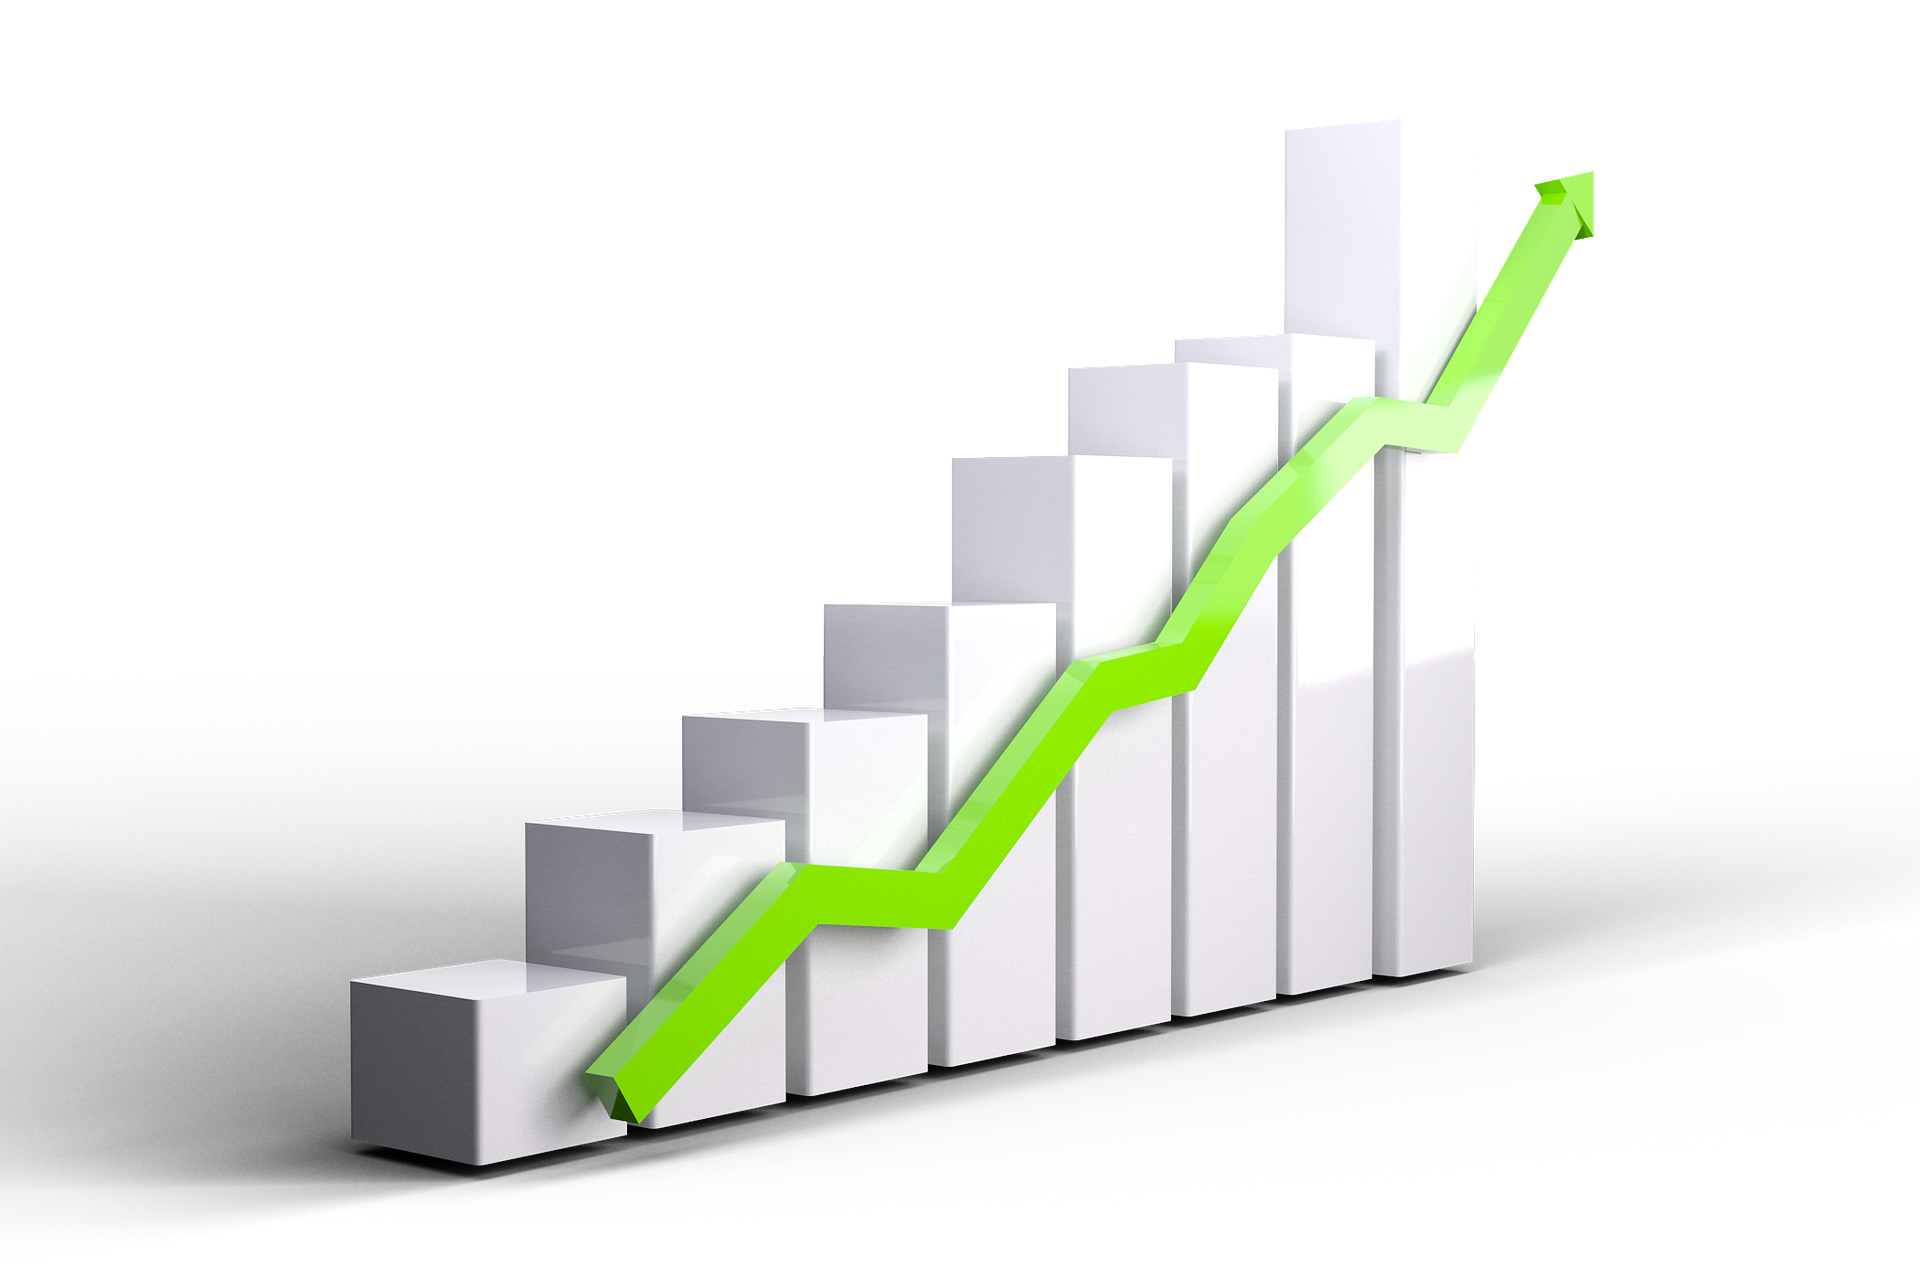 growth-3078543_1920.png